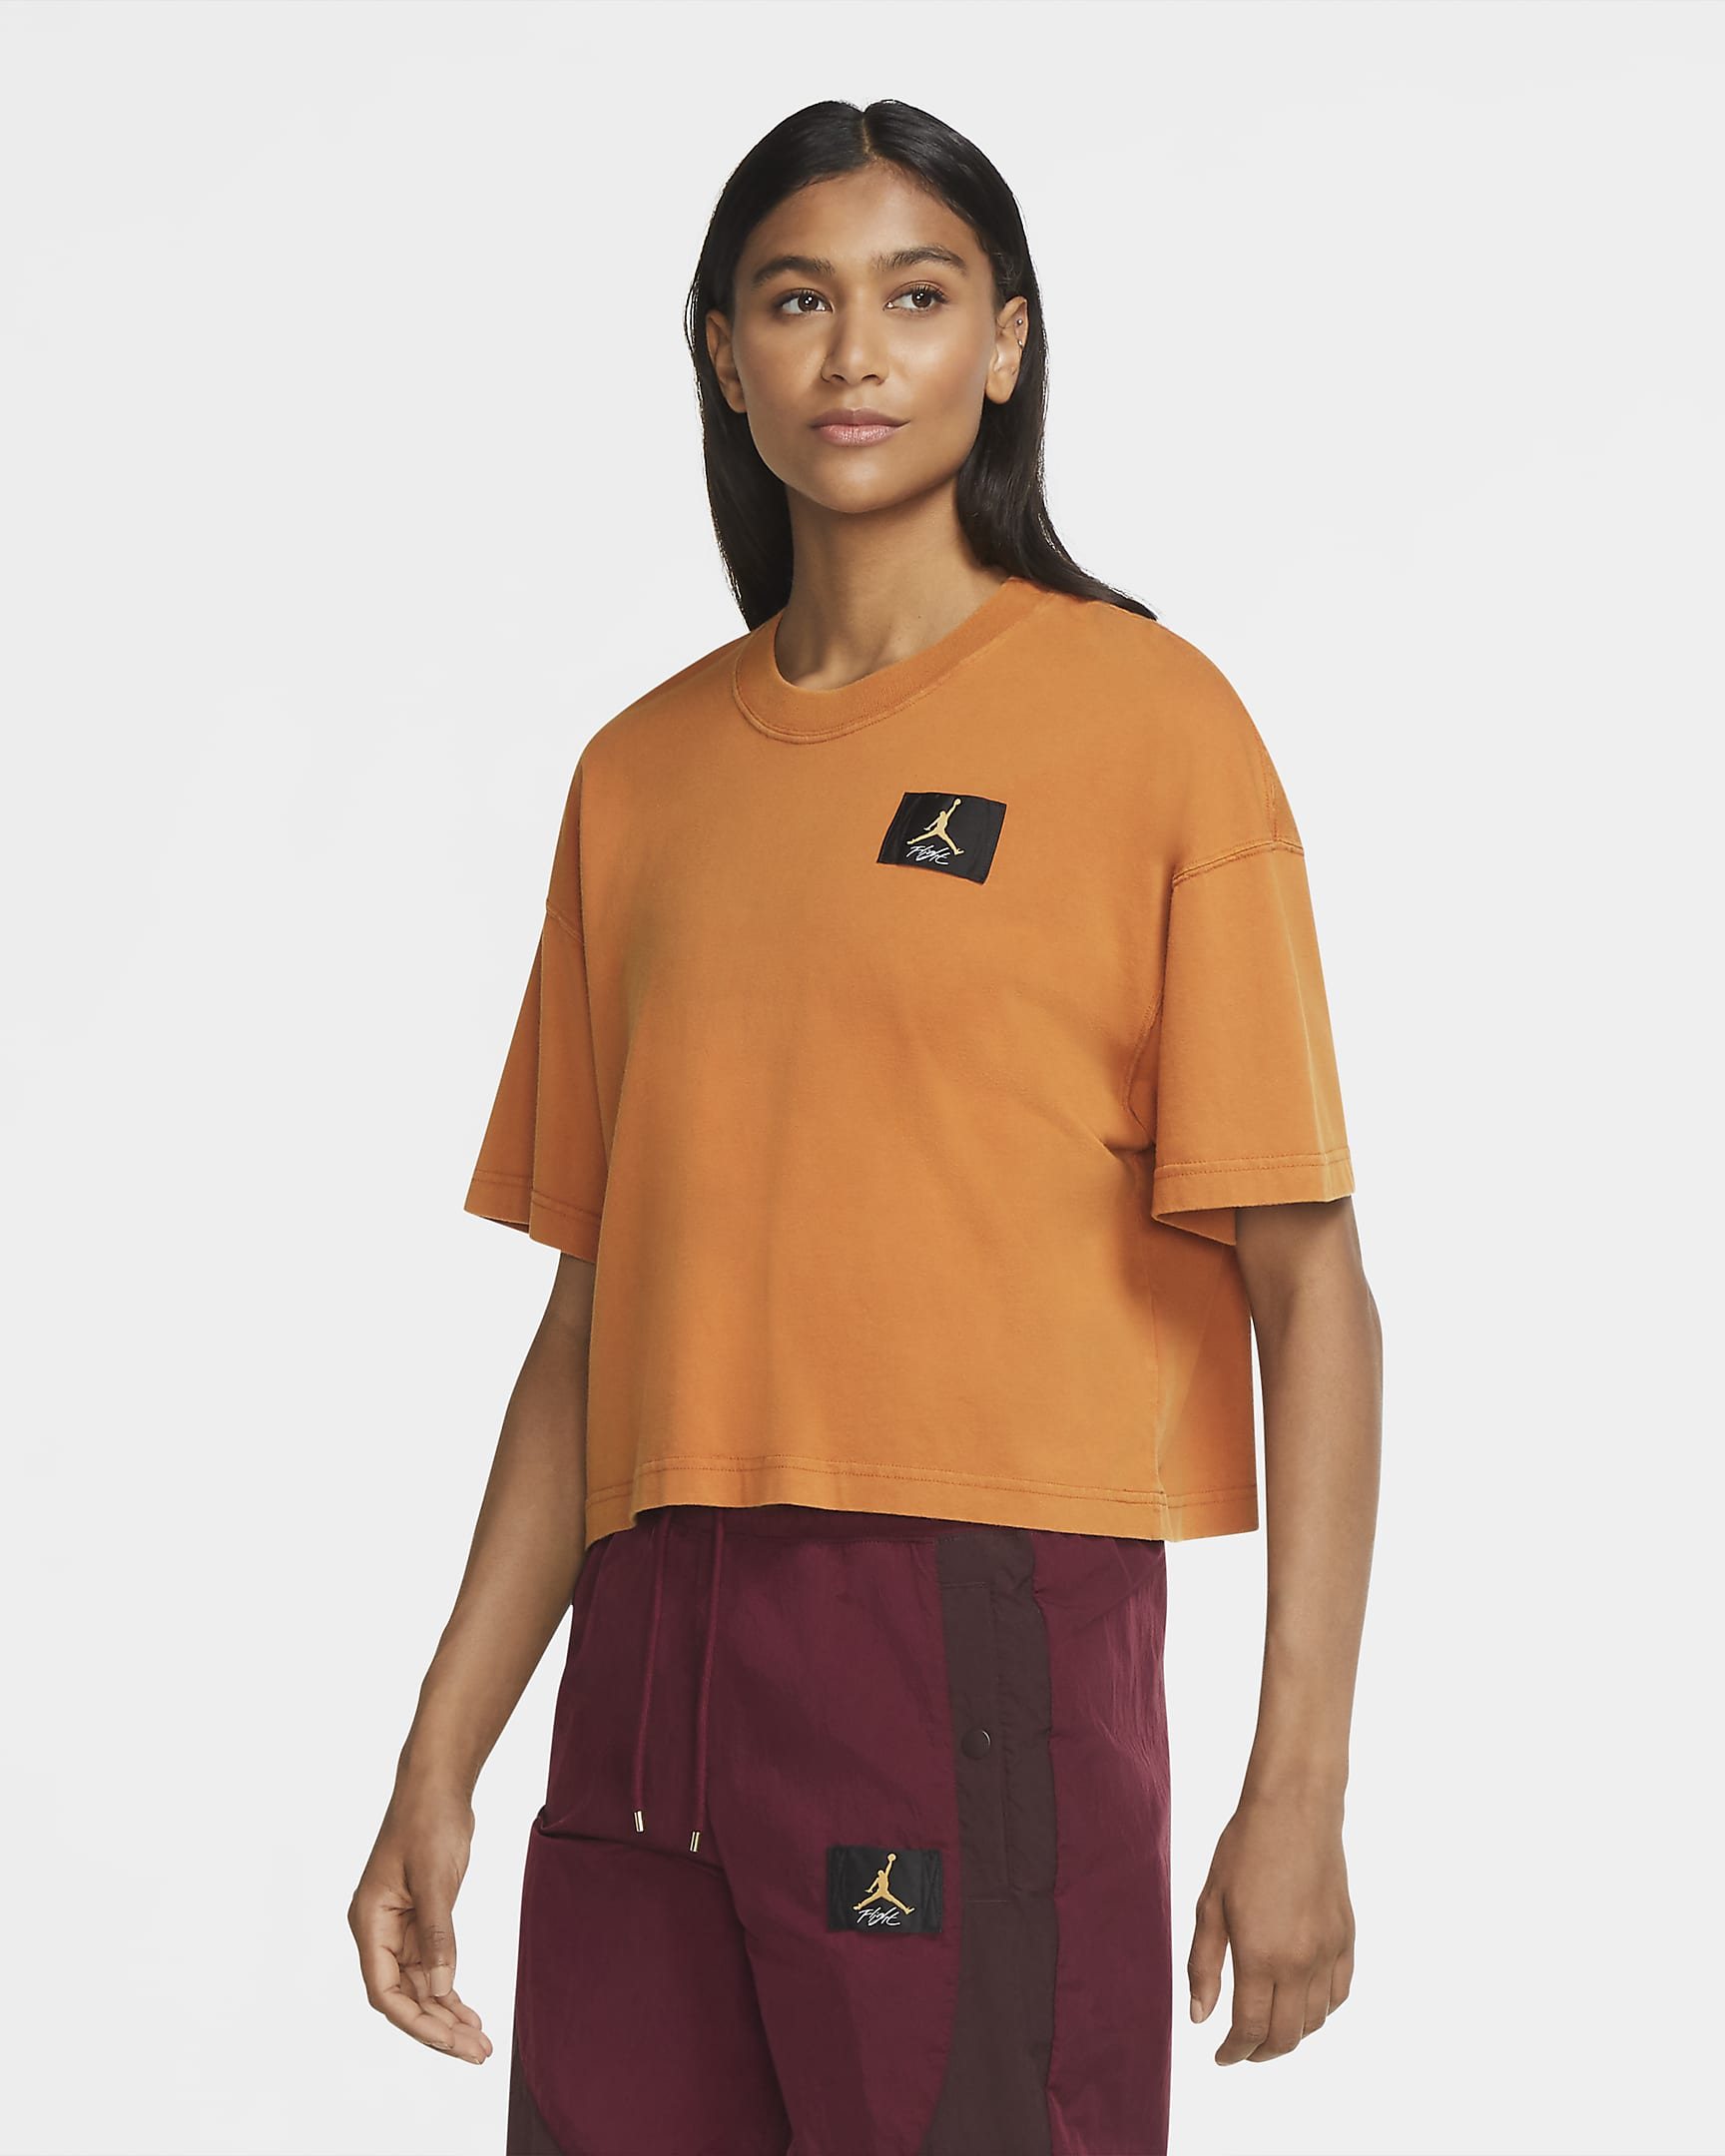 jordan-essentials-womens-short-sleeve-boxy-t-shirt-9xLPQl